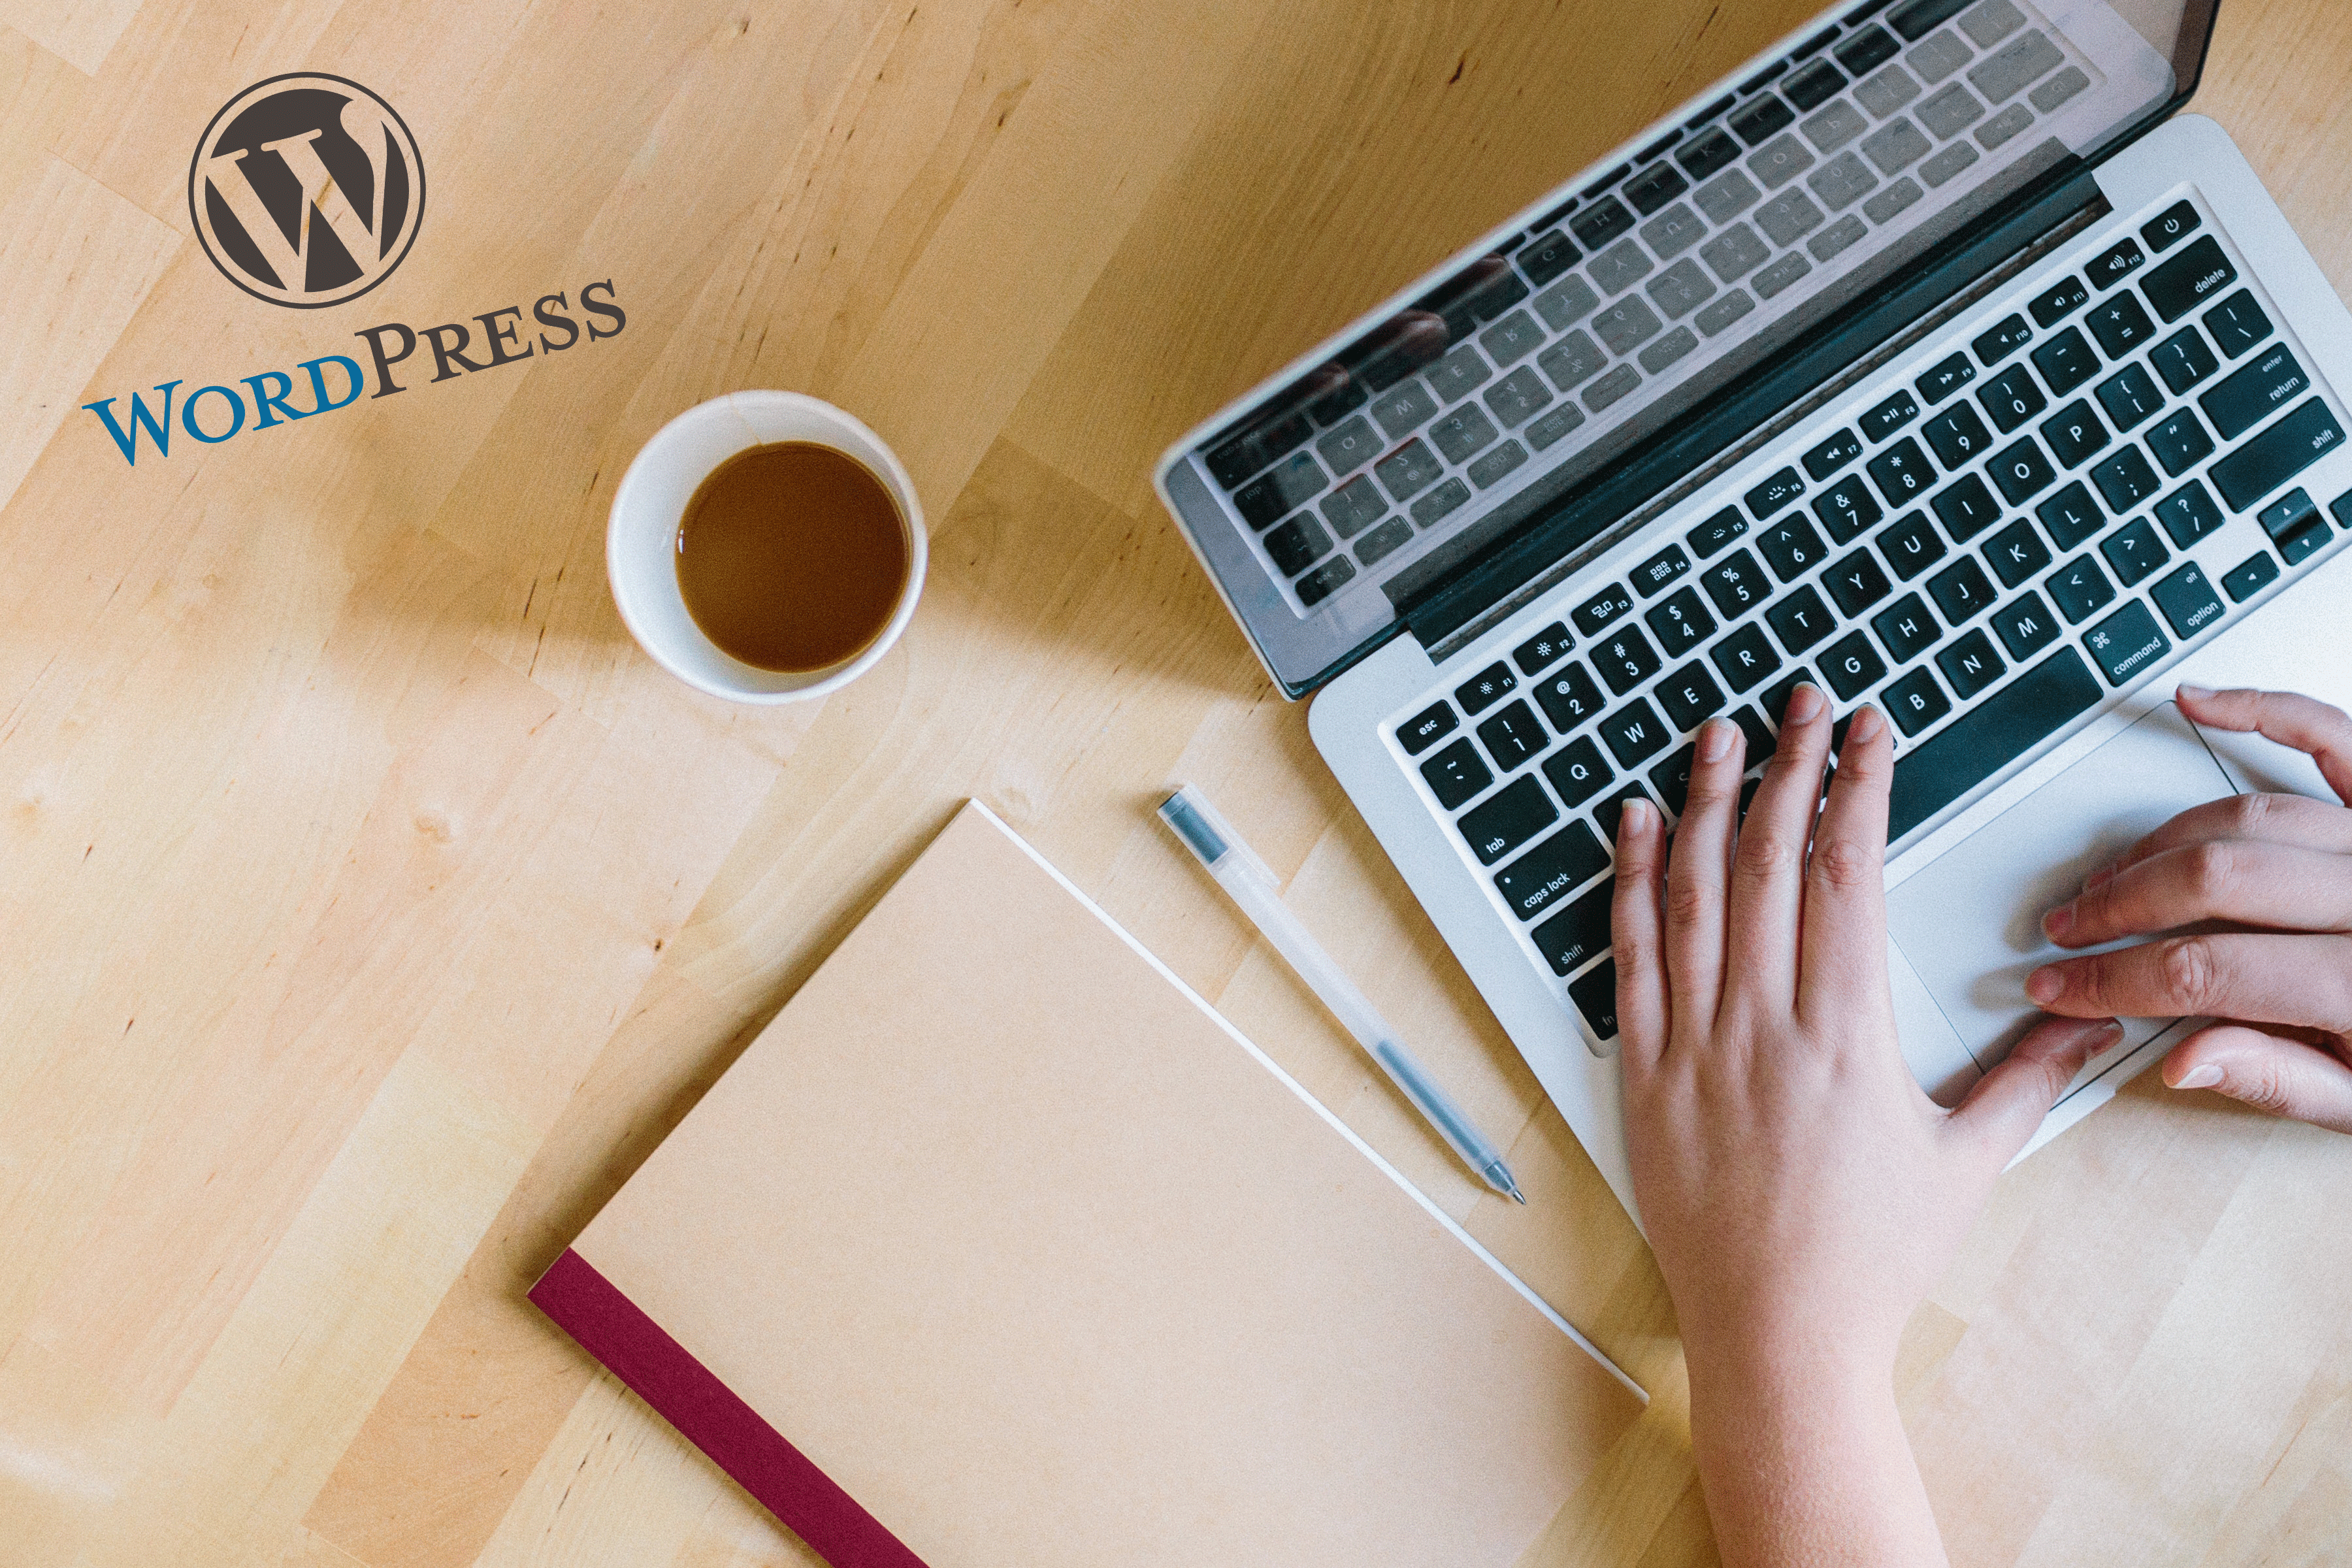 The Ultimate Guide to Starting Your Own WordPress Blog